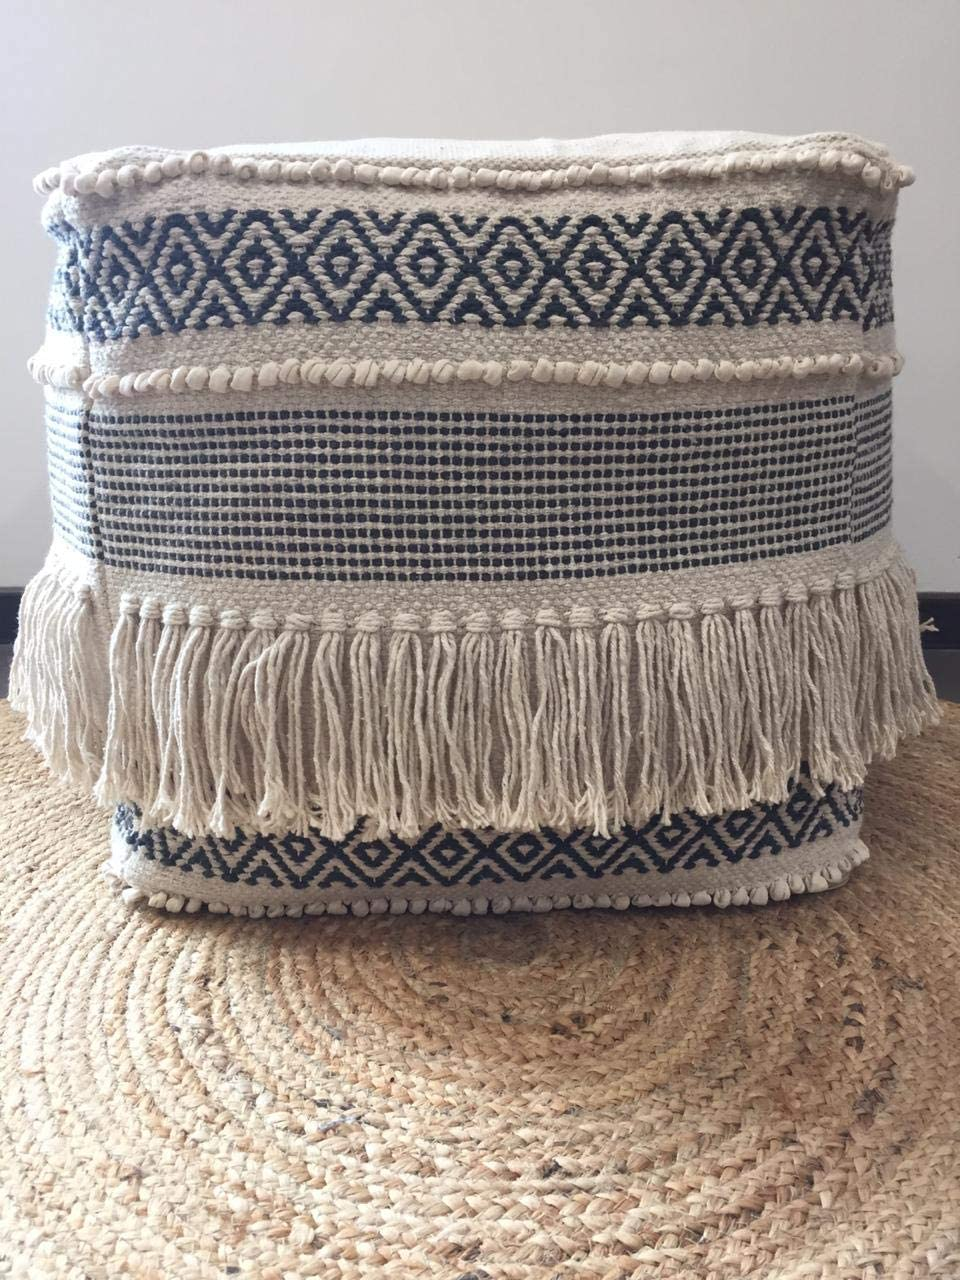 """Jaipur Home Pouf Cover, Unstuffed Ottoman Handmade Woven Foot Stool Soft Knitted Cotton Linen Footrest Square Floor Cushion Unfilled Pouf for Living Room Home Chair,Grey, 17.5""""x17.5""""x12.9"""""""